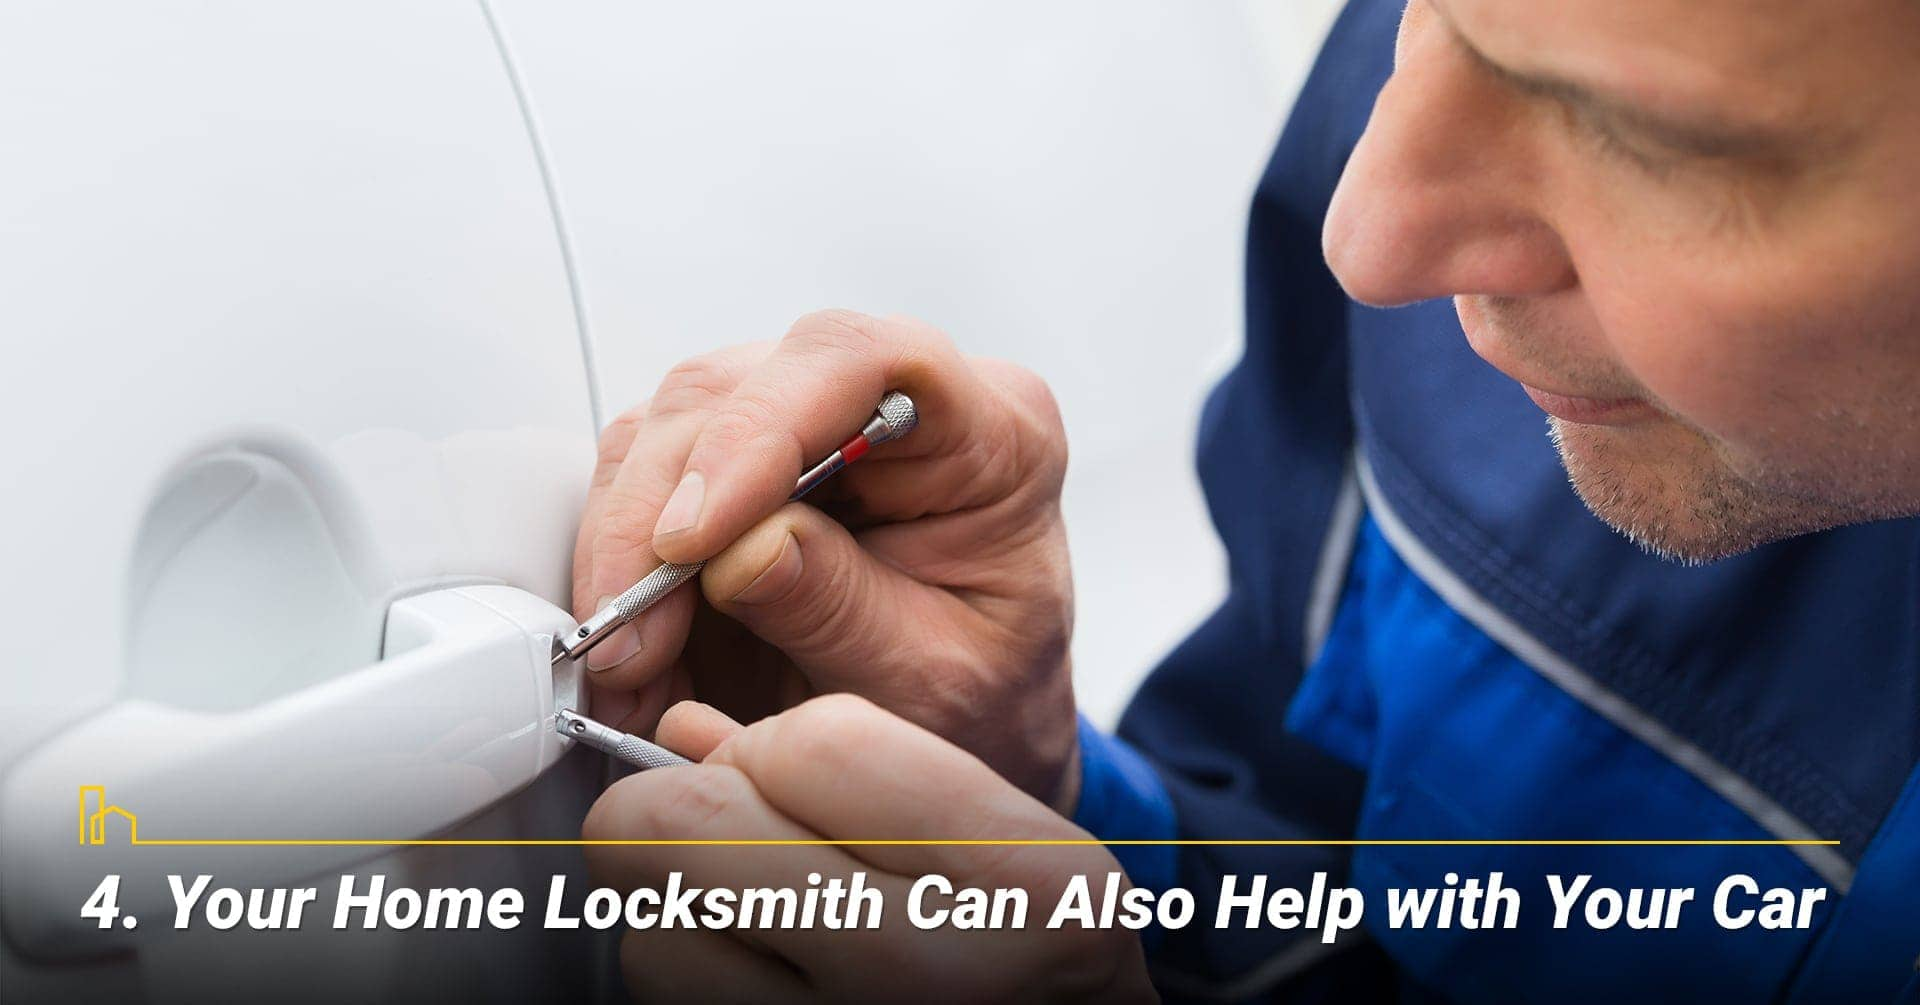 Your Home Locksmith Can Also Help with Your Car, they can help you get in your car